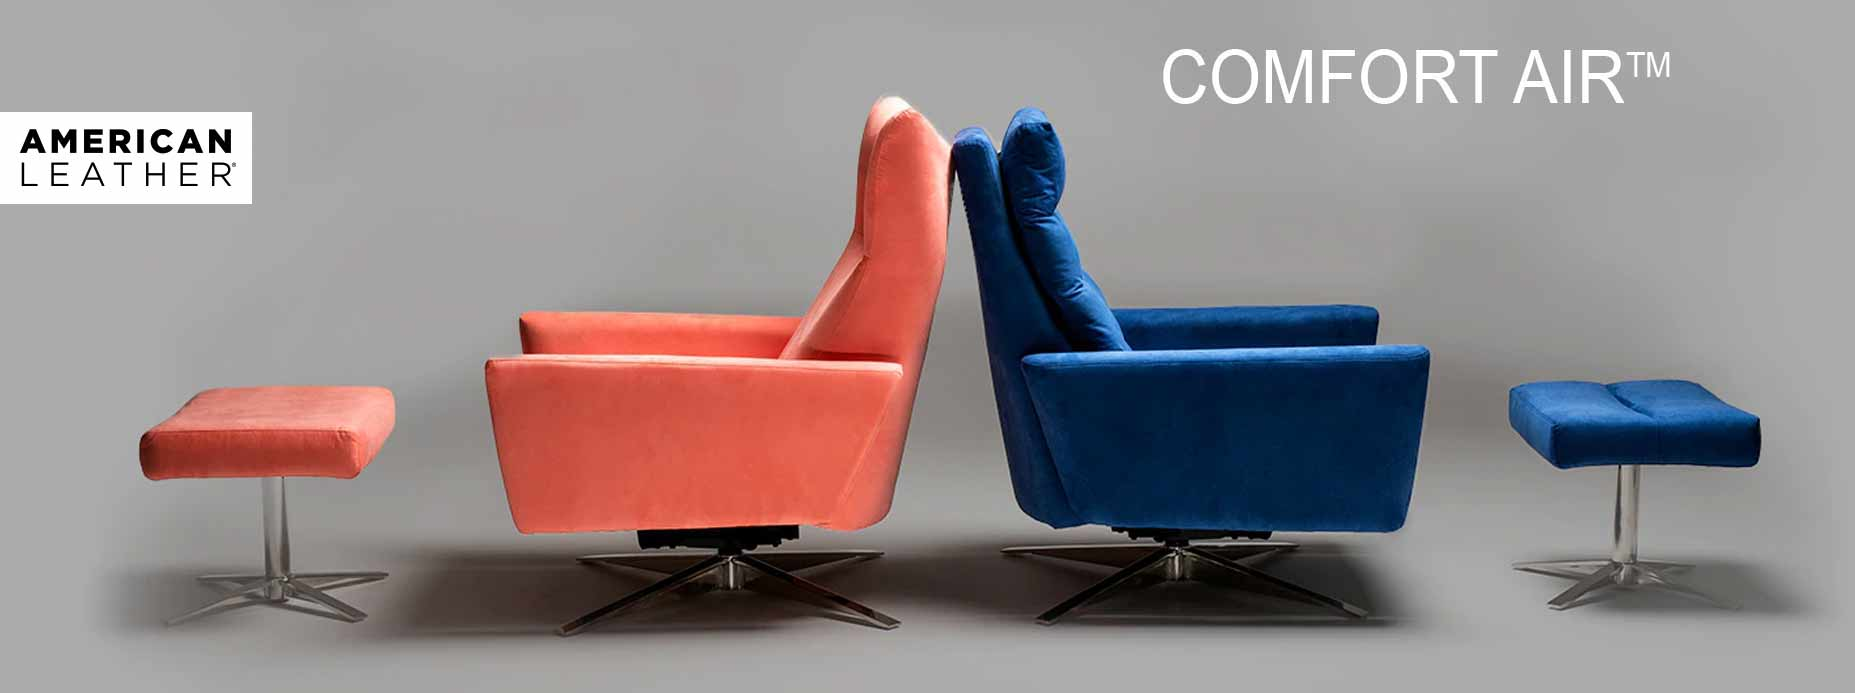 Comfort Air by American Leather